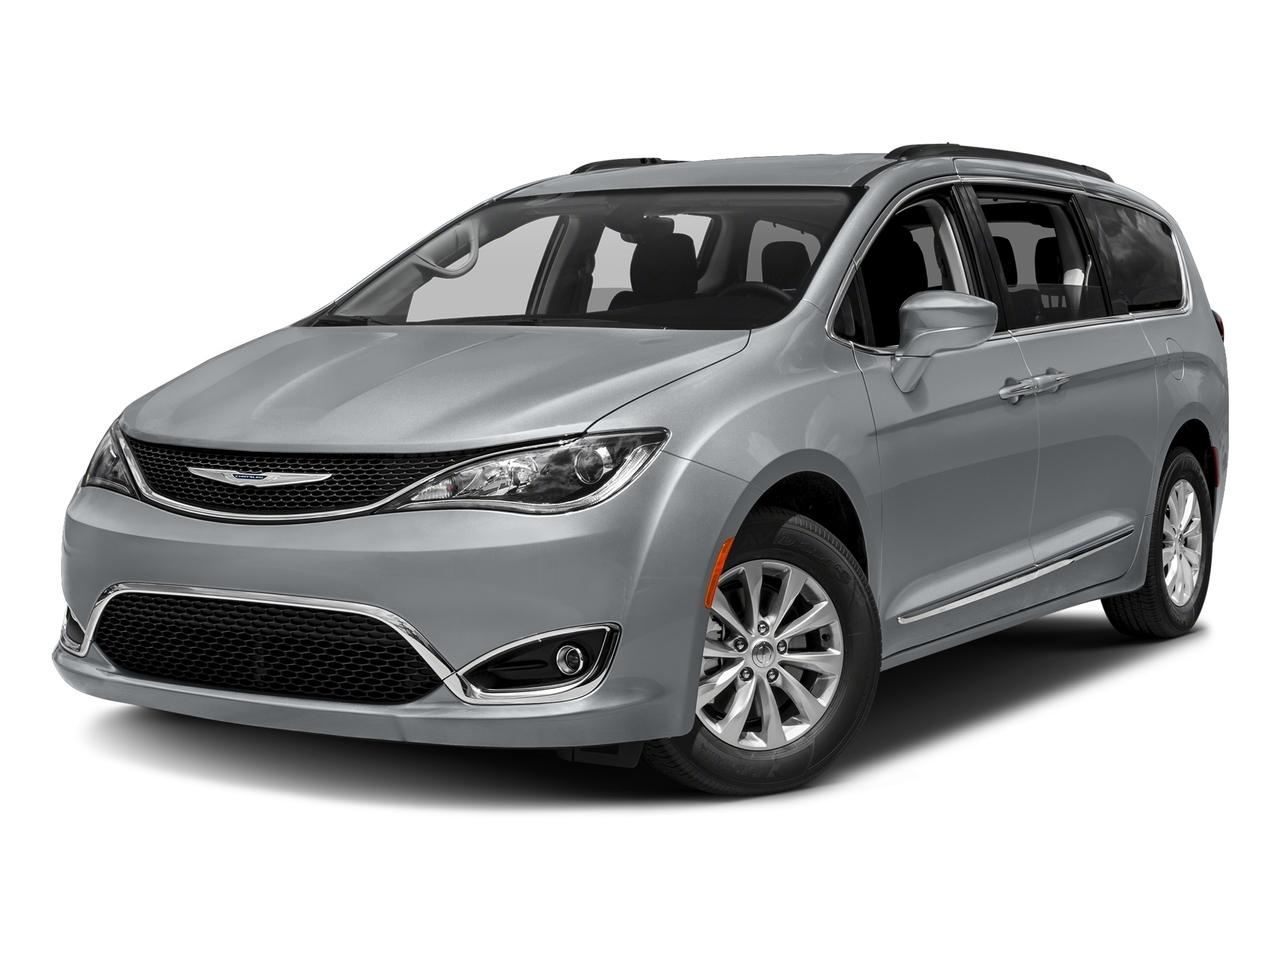 2017 Chrysler Pacifica Vehicle Photo in Tulsa, OK 74133